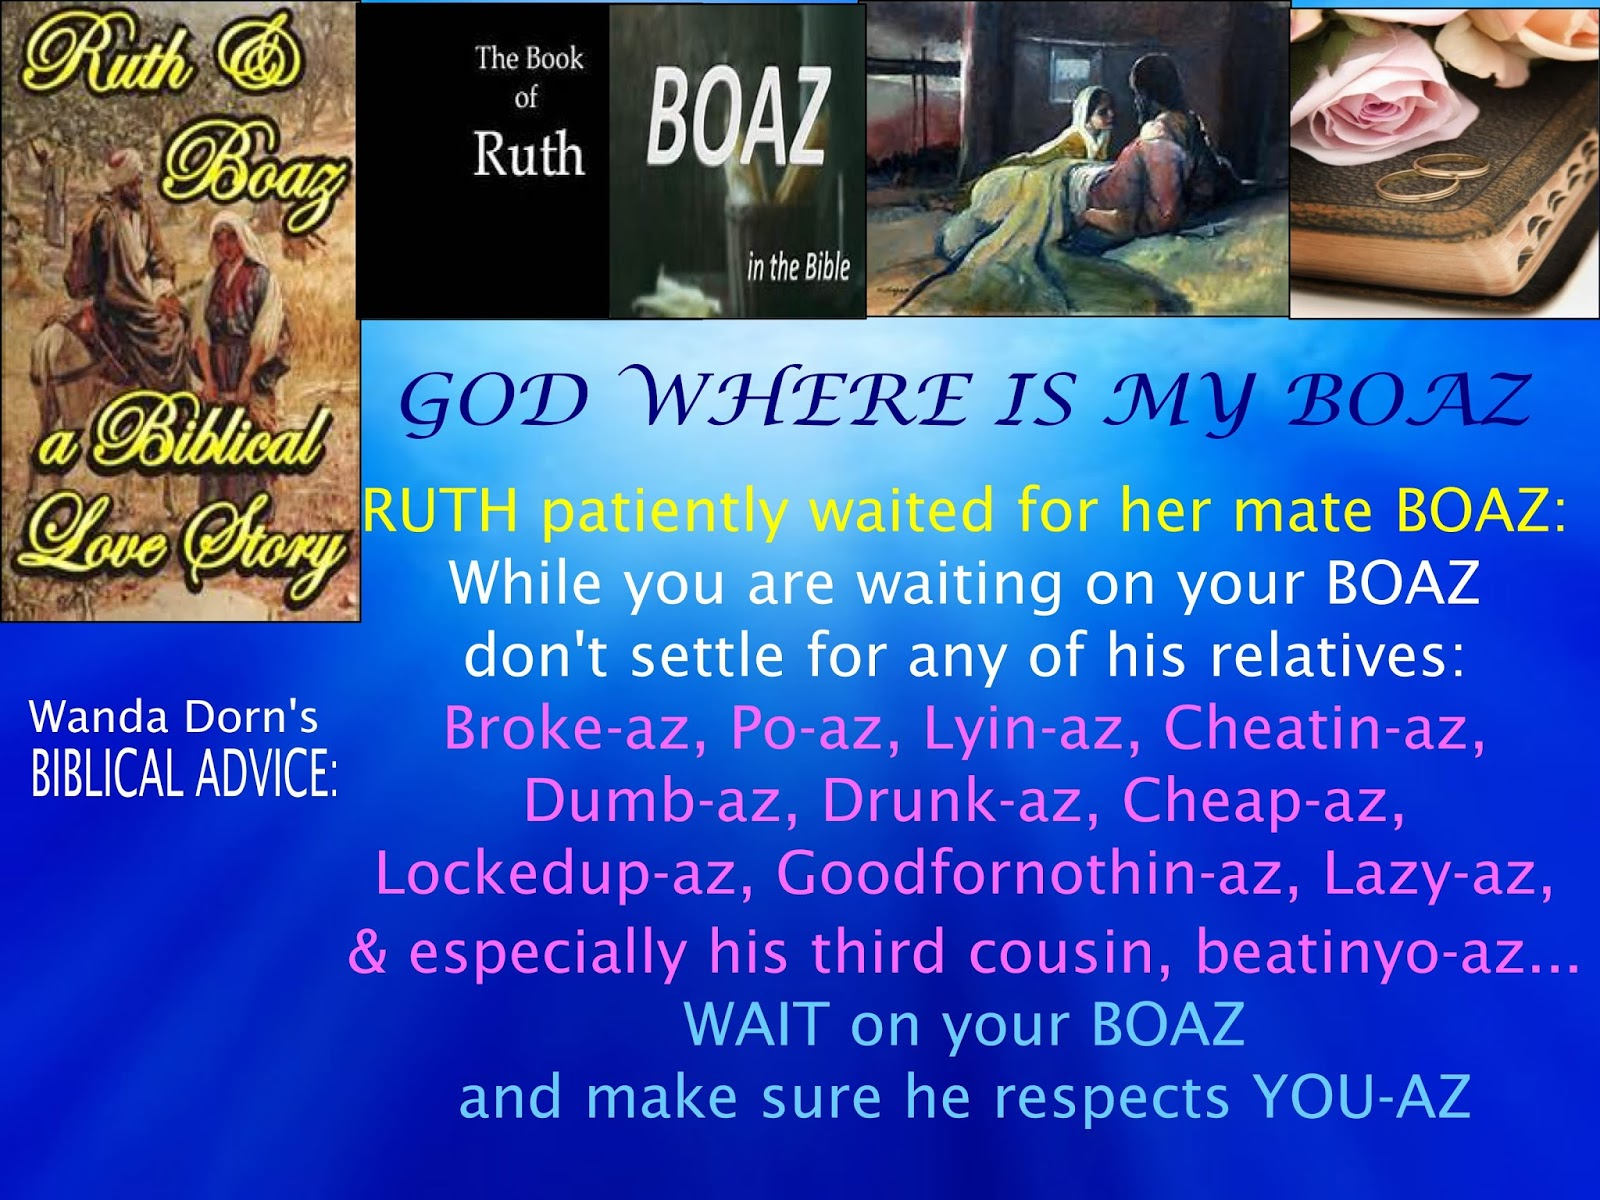 biblical dating advice boaz Get dating advice and dating tips from experts in online dating, dating, and relationships plus, advice from your fellow singles about what works.